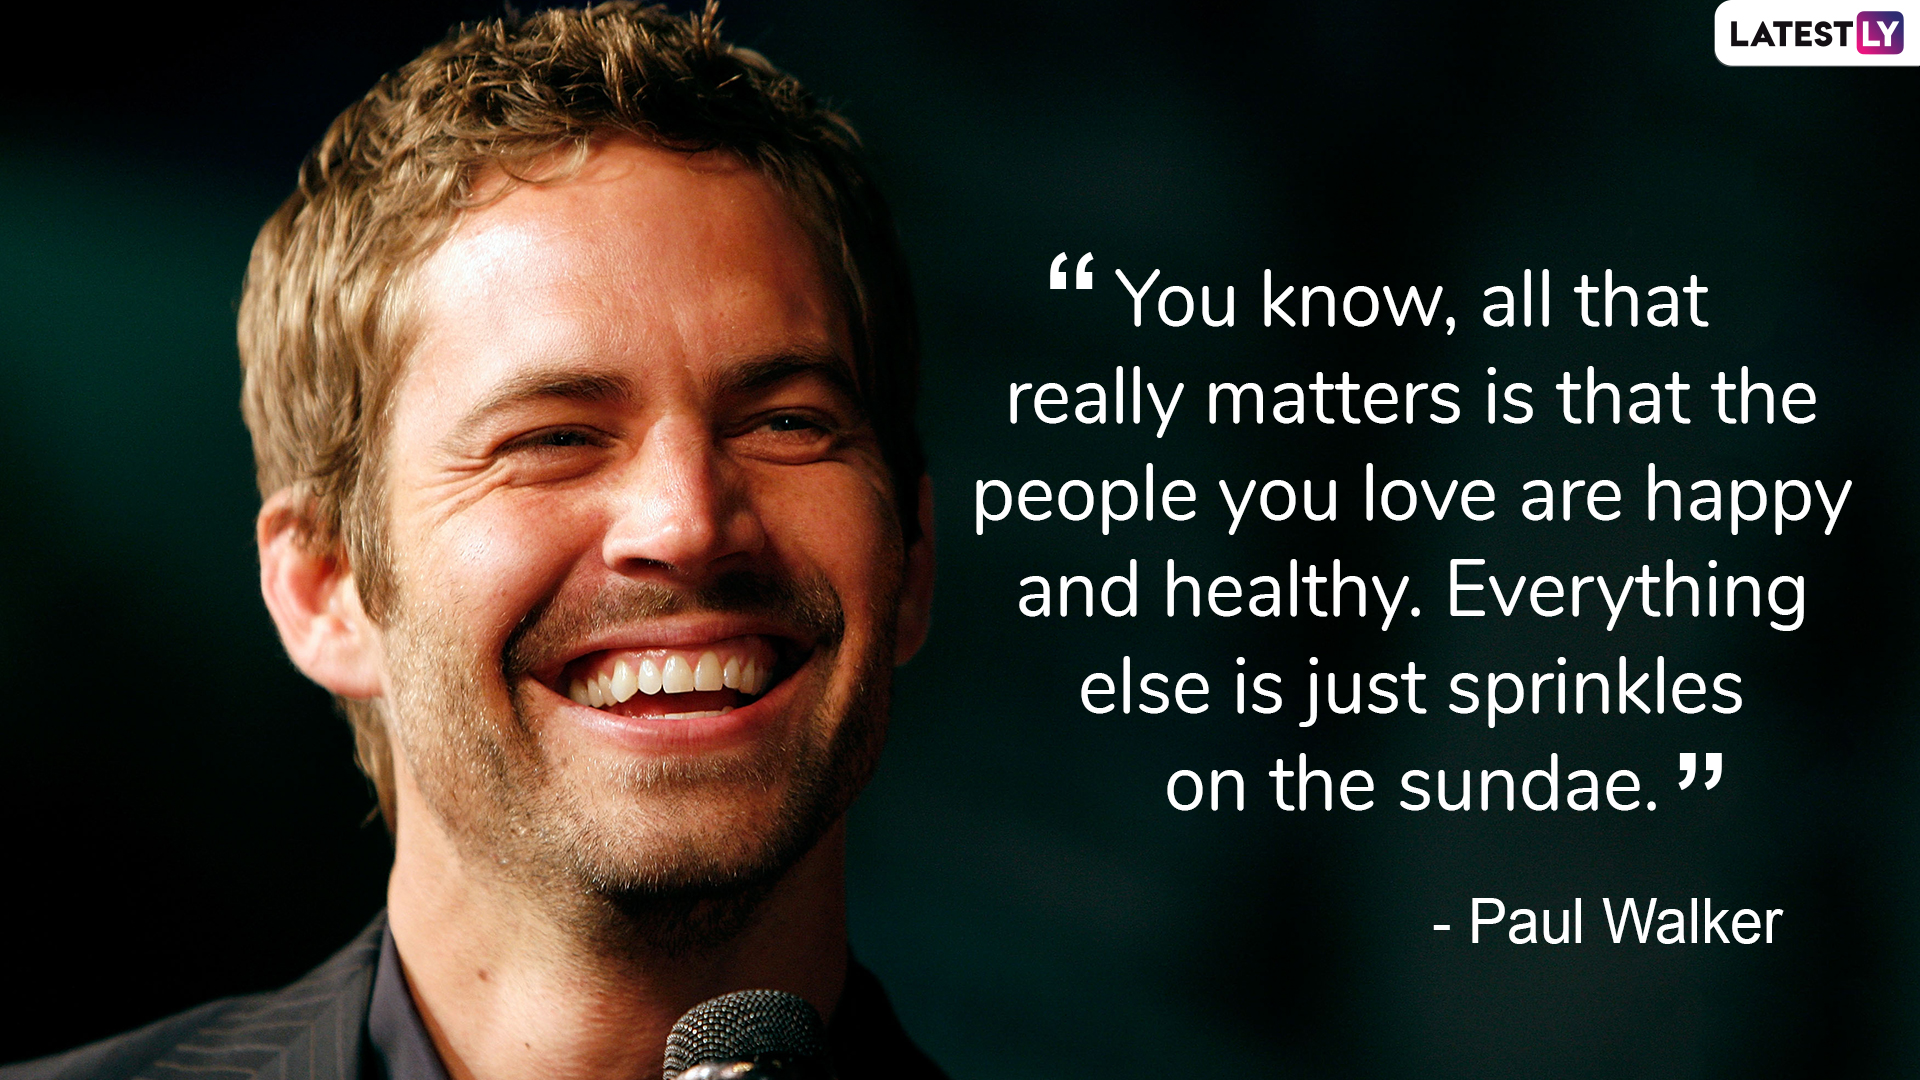 Paul Walker on family and loved ones.